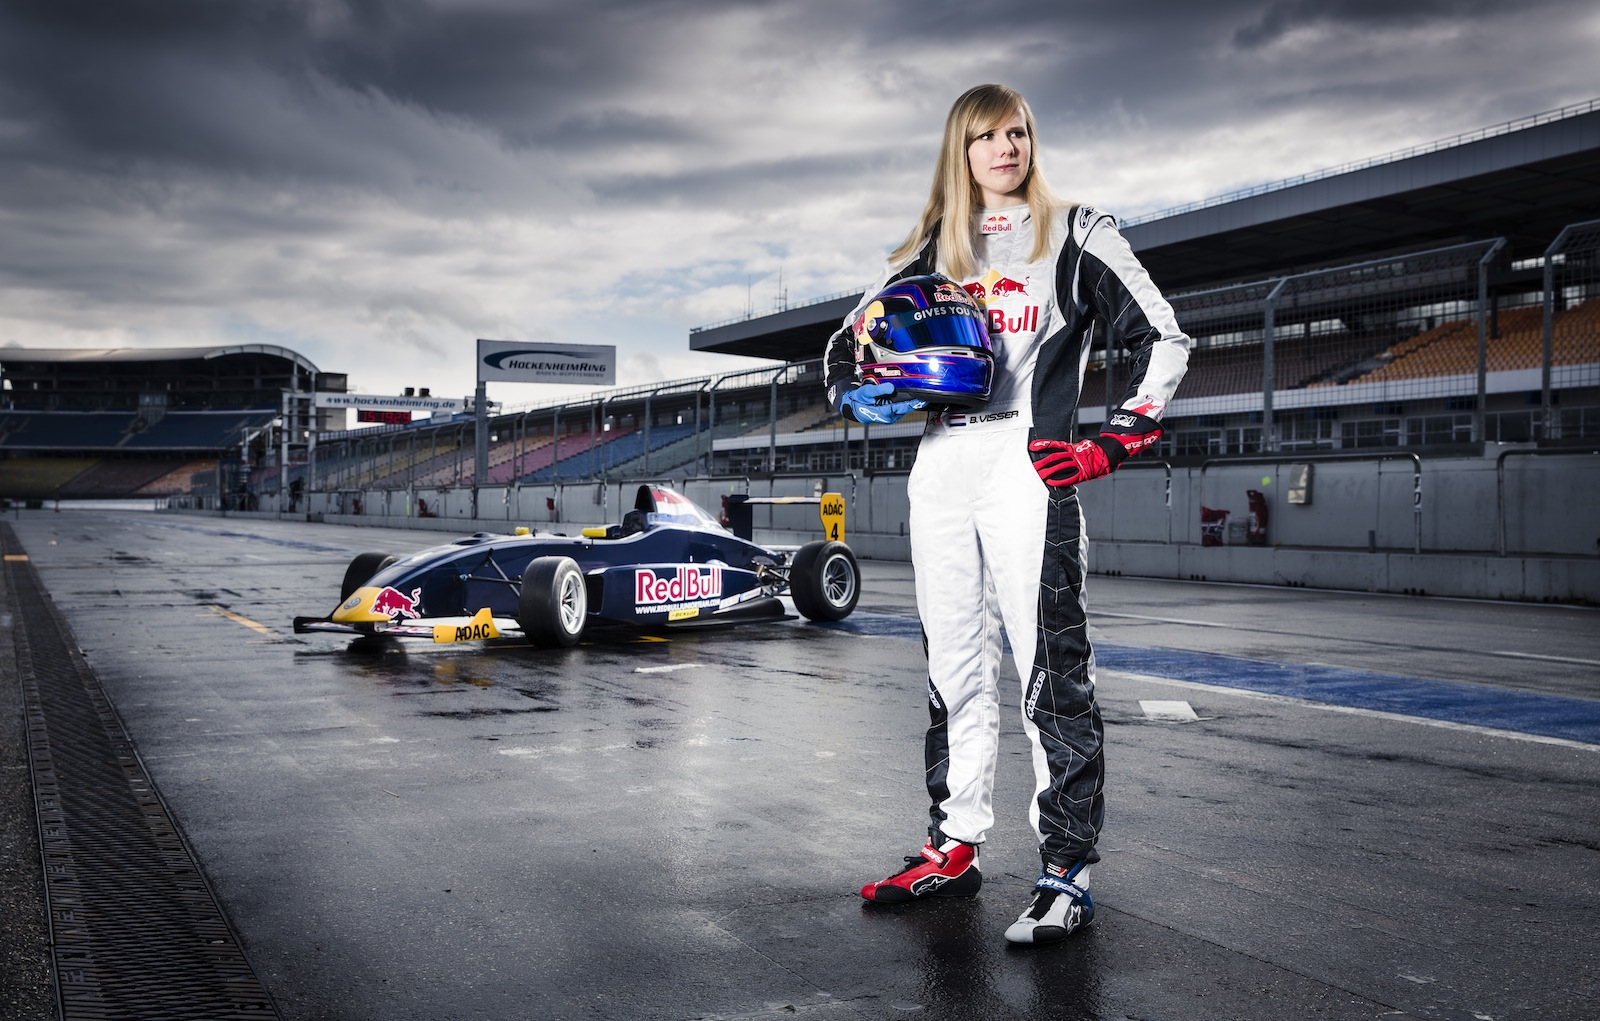 Red Bull Signs First Ever Female Racer To Junior Team